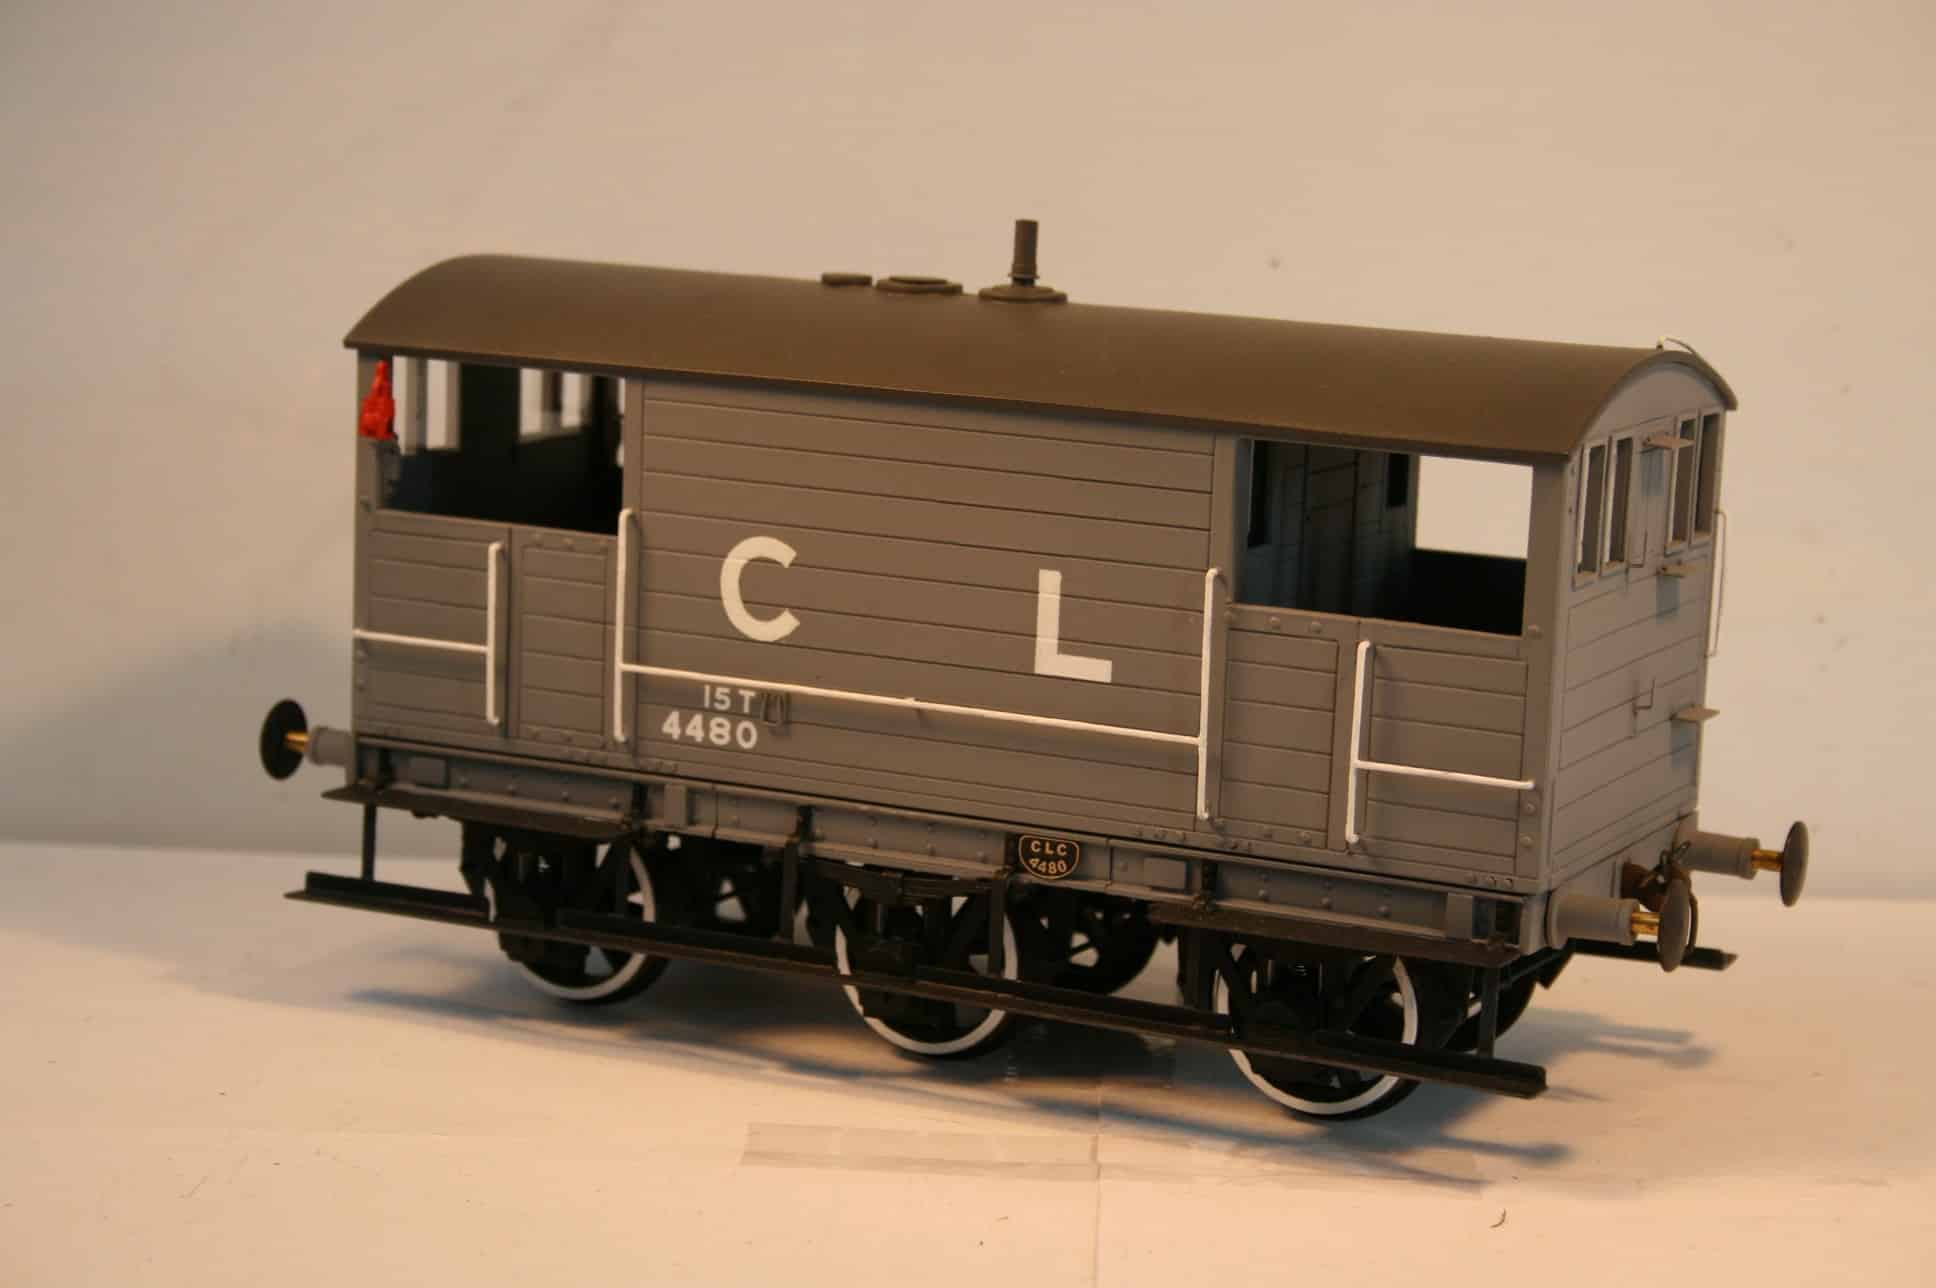 CLC 15 ton Goods Brake Van 4480 in grey livery